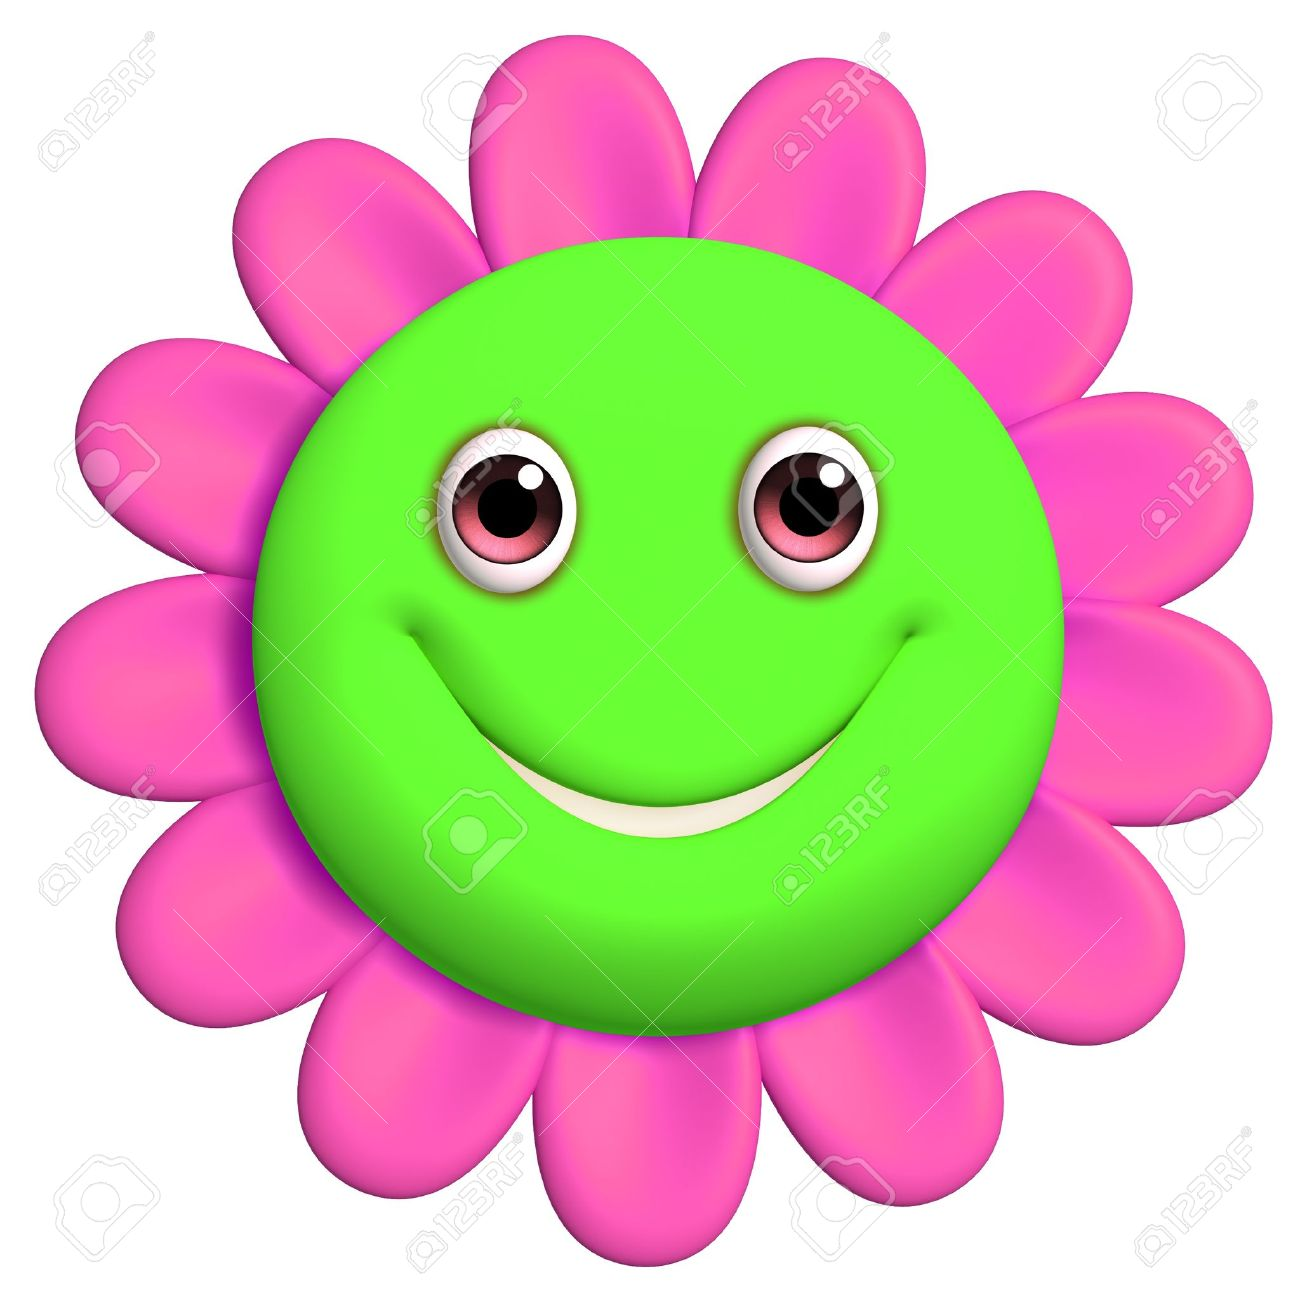 Flower smiley face clipart. Best clipartion com green